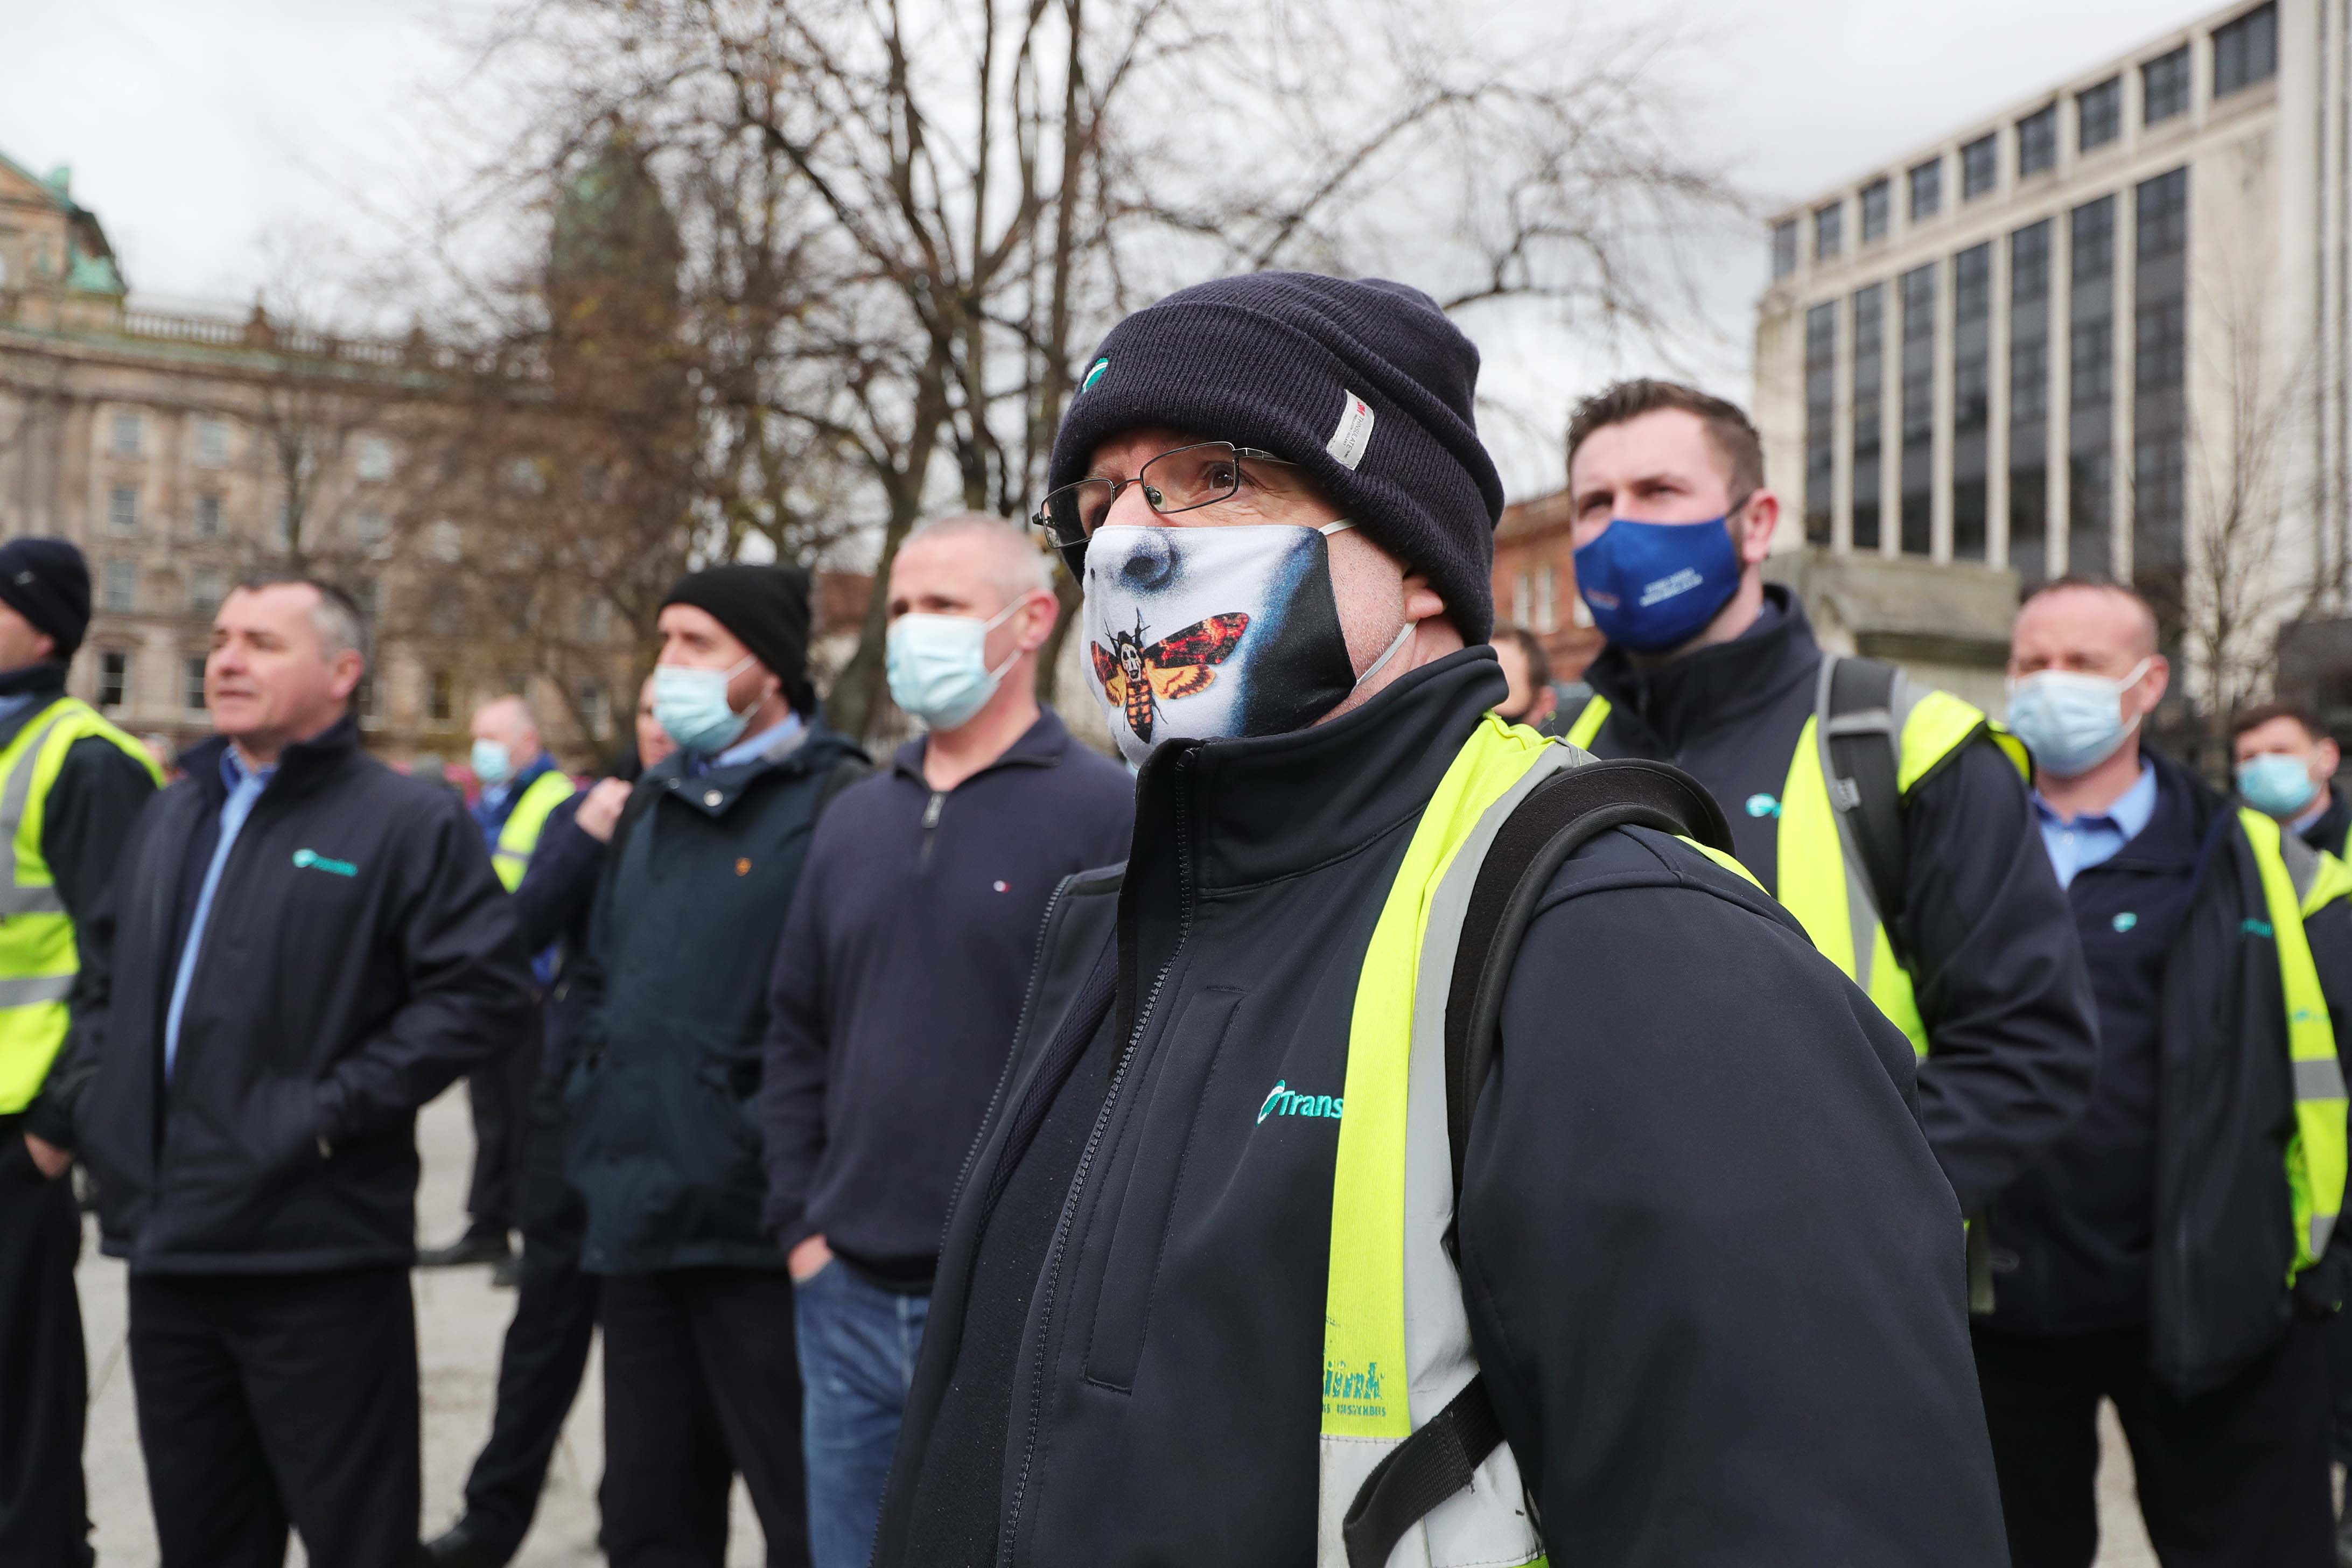 SAFETY PLEA: Bus drivers gathered in Belfast city centre today to condemn attacks on crews.